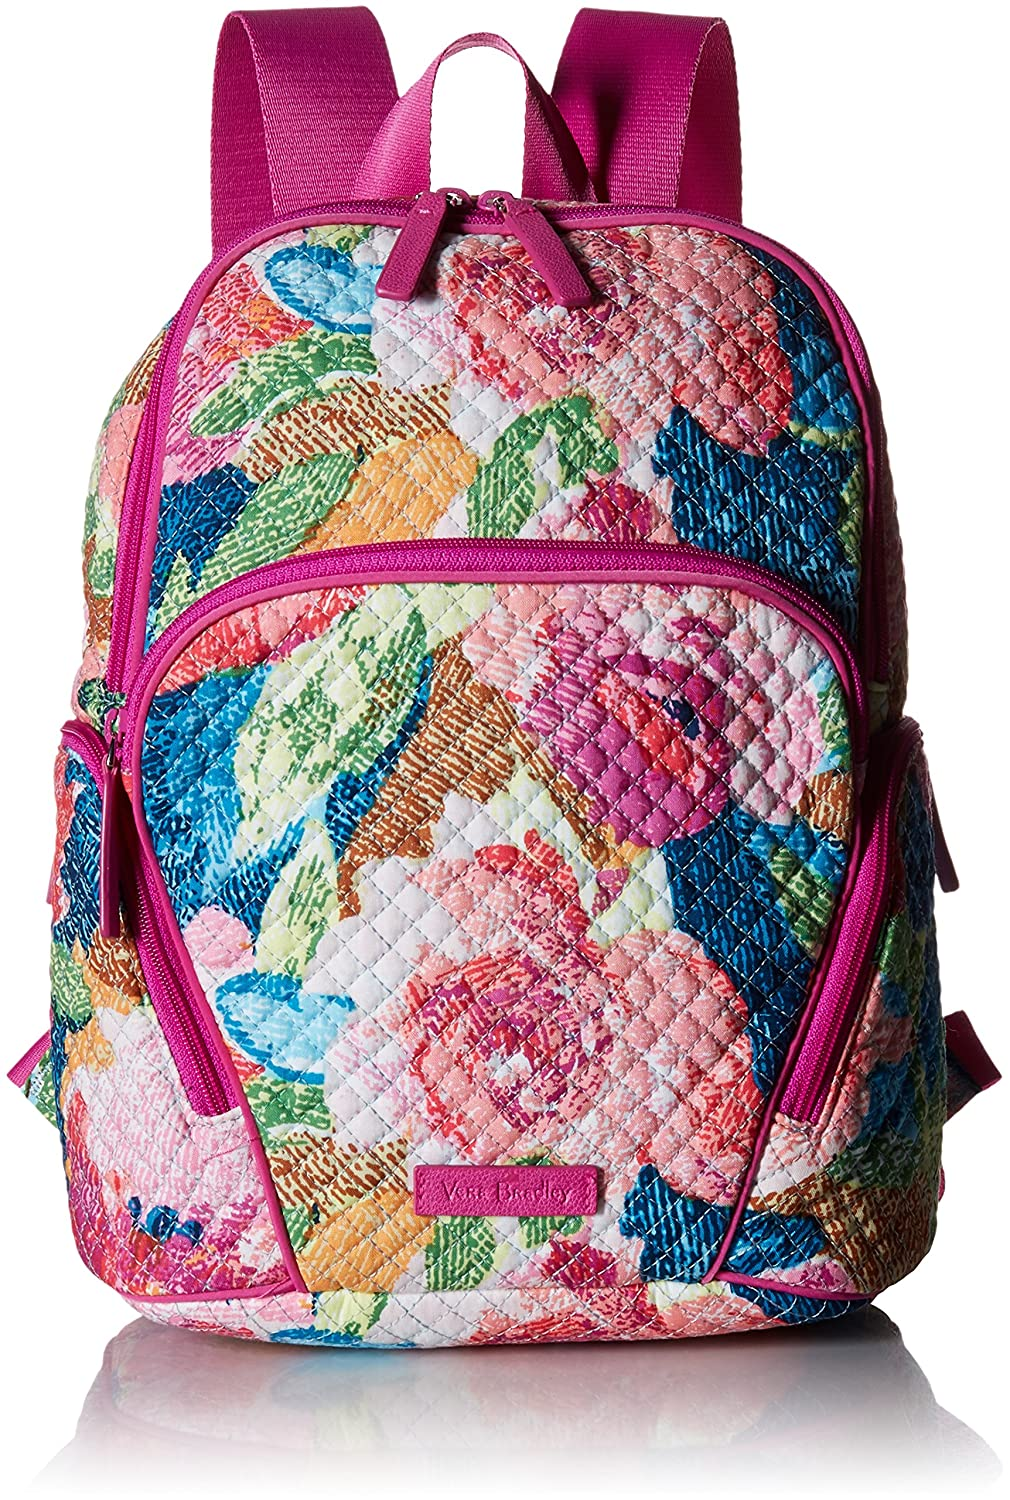 8722d9d245d Amazon.com  Vera Bradley Hadley Backpack, Signature Cotton, Superbloom   Clothing